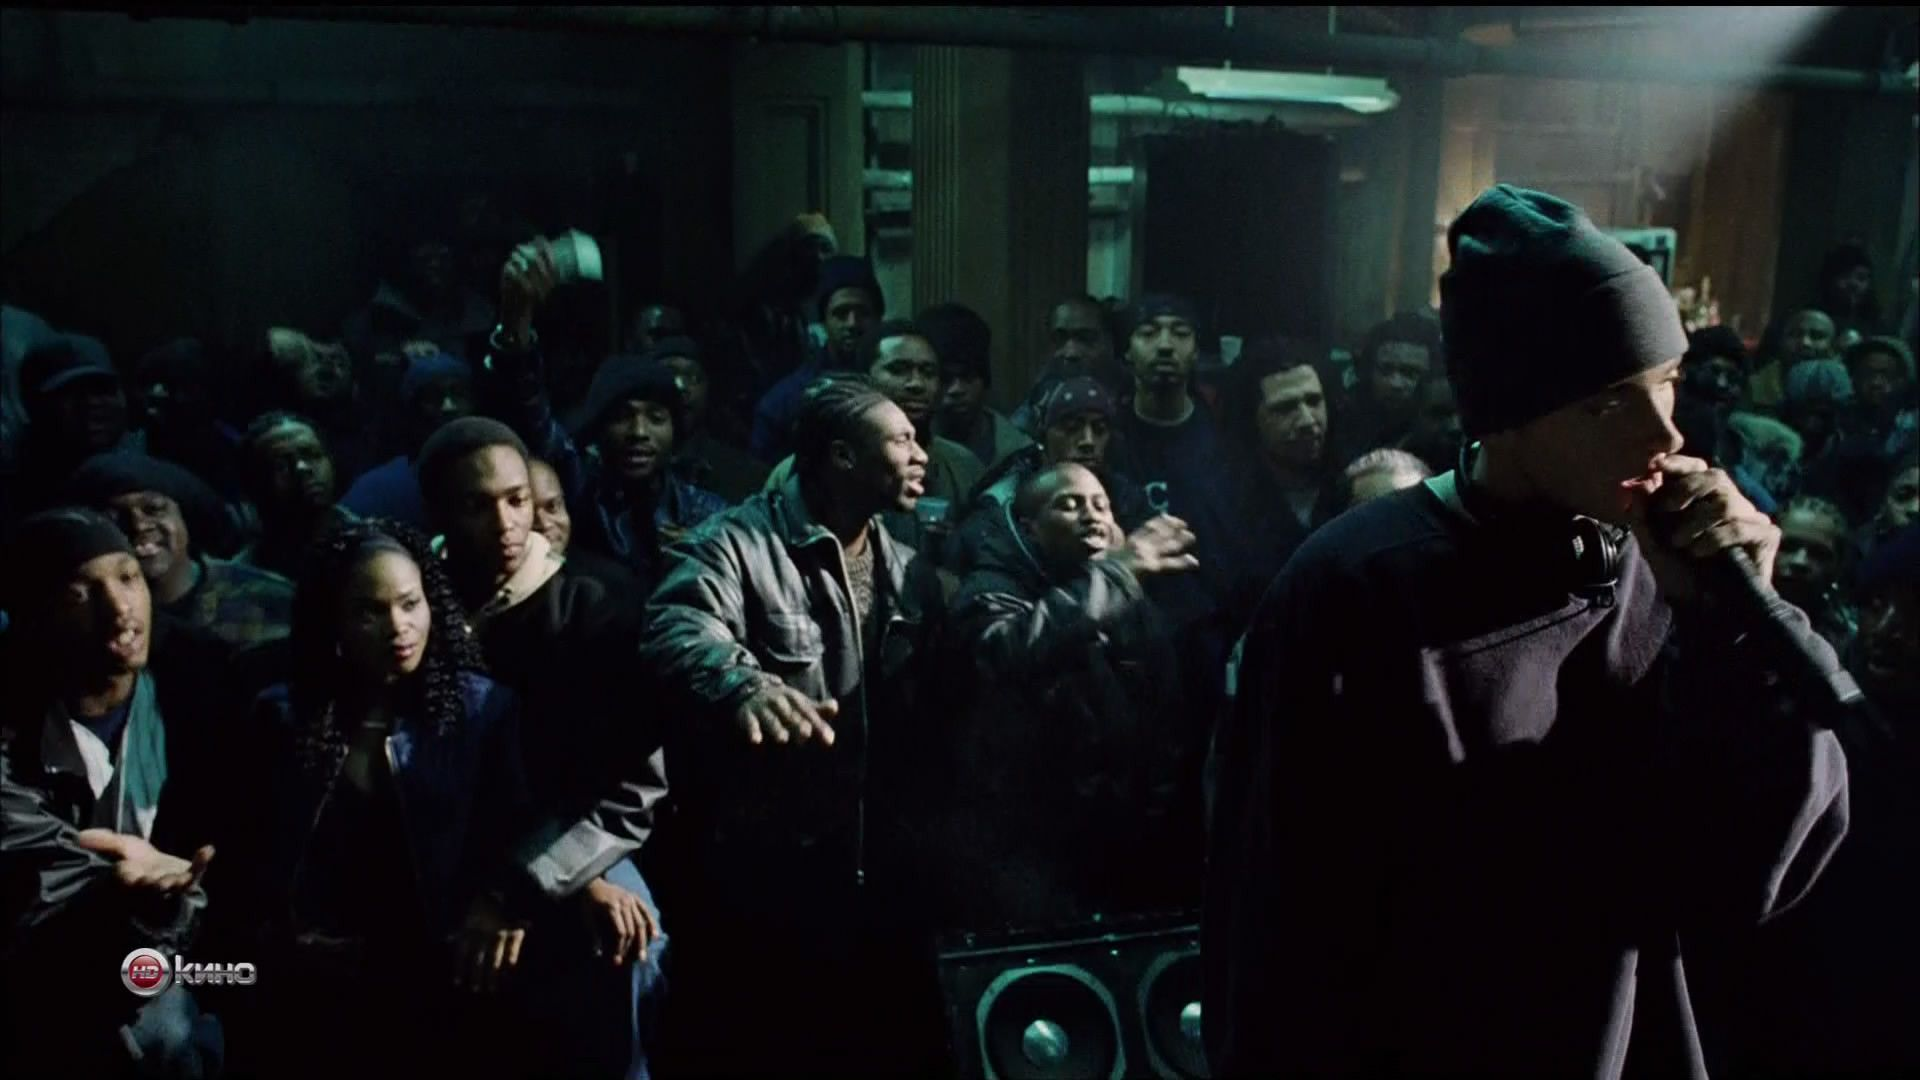 8 Mile Wallpaper Image Group 49 1920x1080